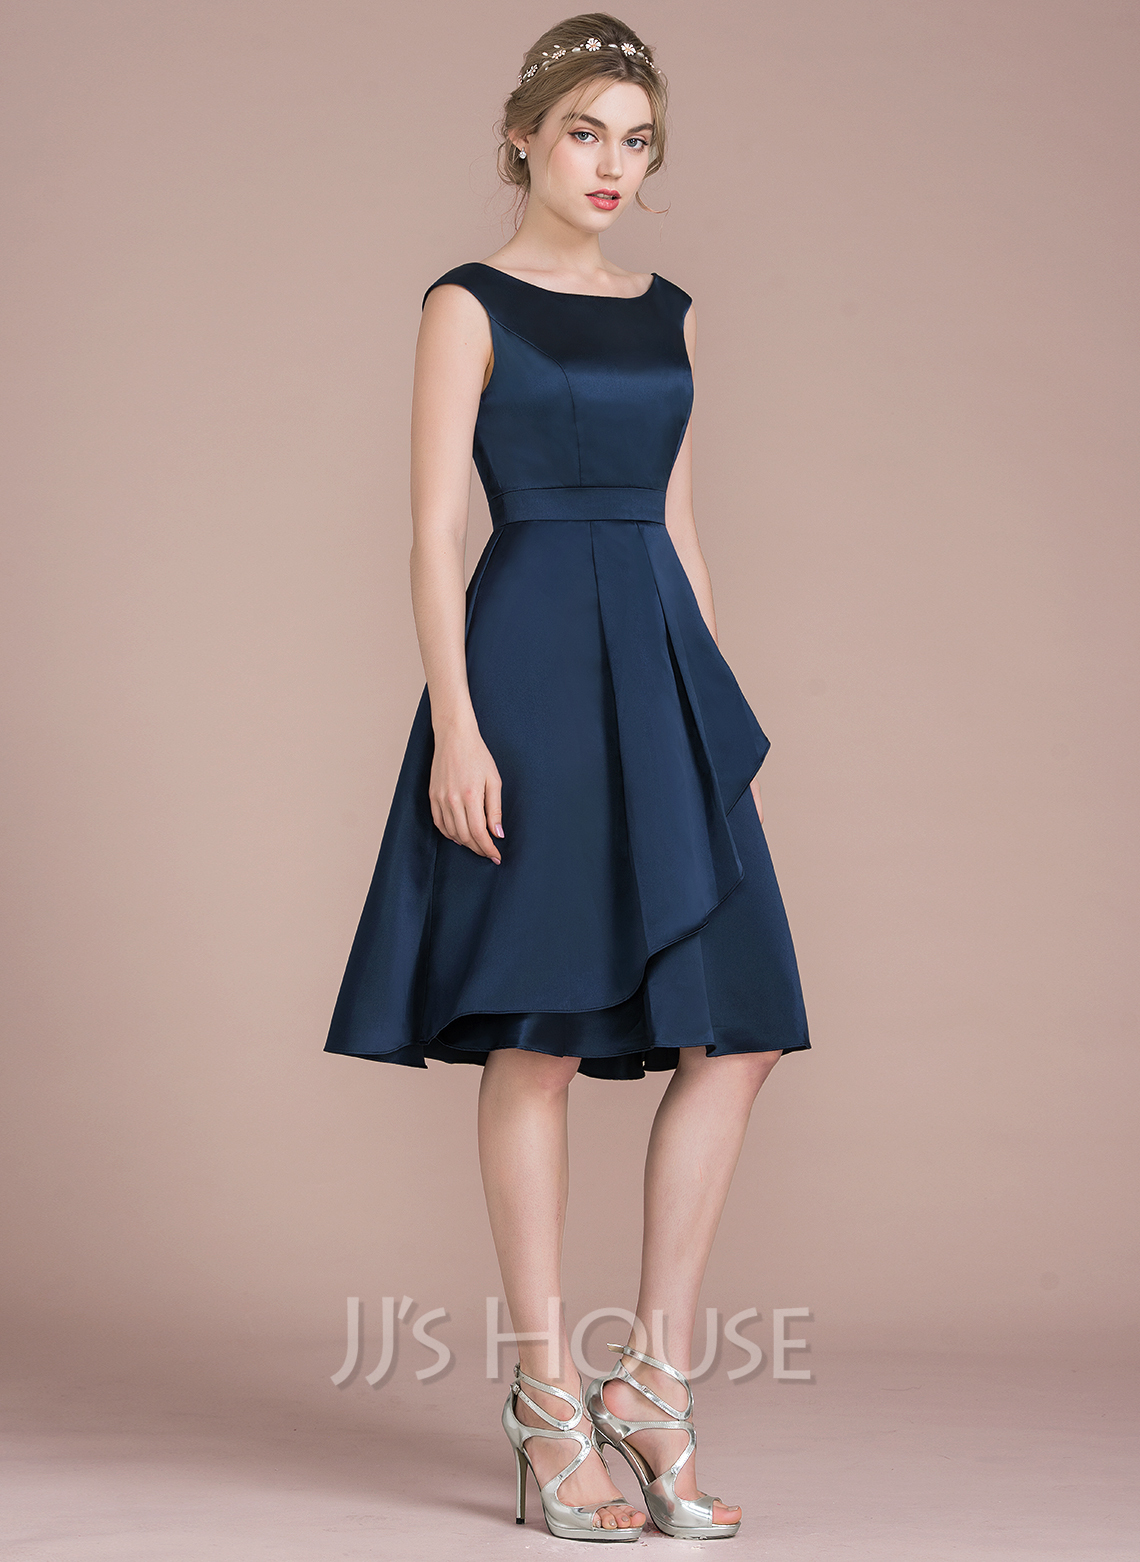 A lineprincess scoop neck knee length satin bridesmaid dress with a lineprincess scoop neck knee length satin bridesmaid dress with cascading ruffles loading zoom ombrellifo Image collections